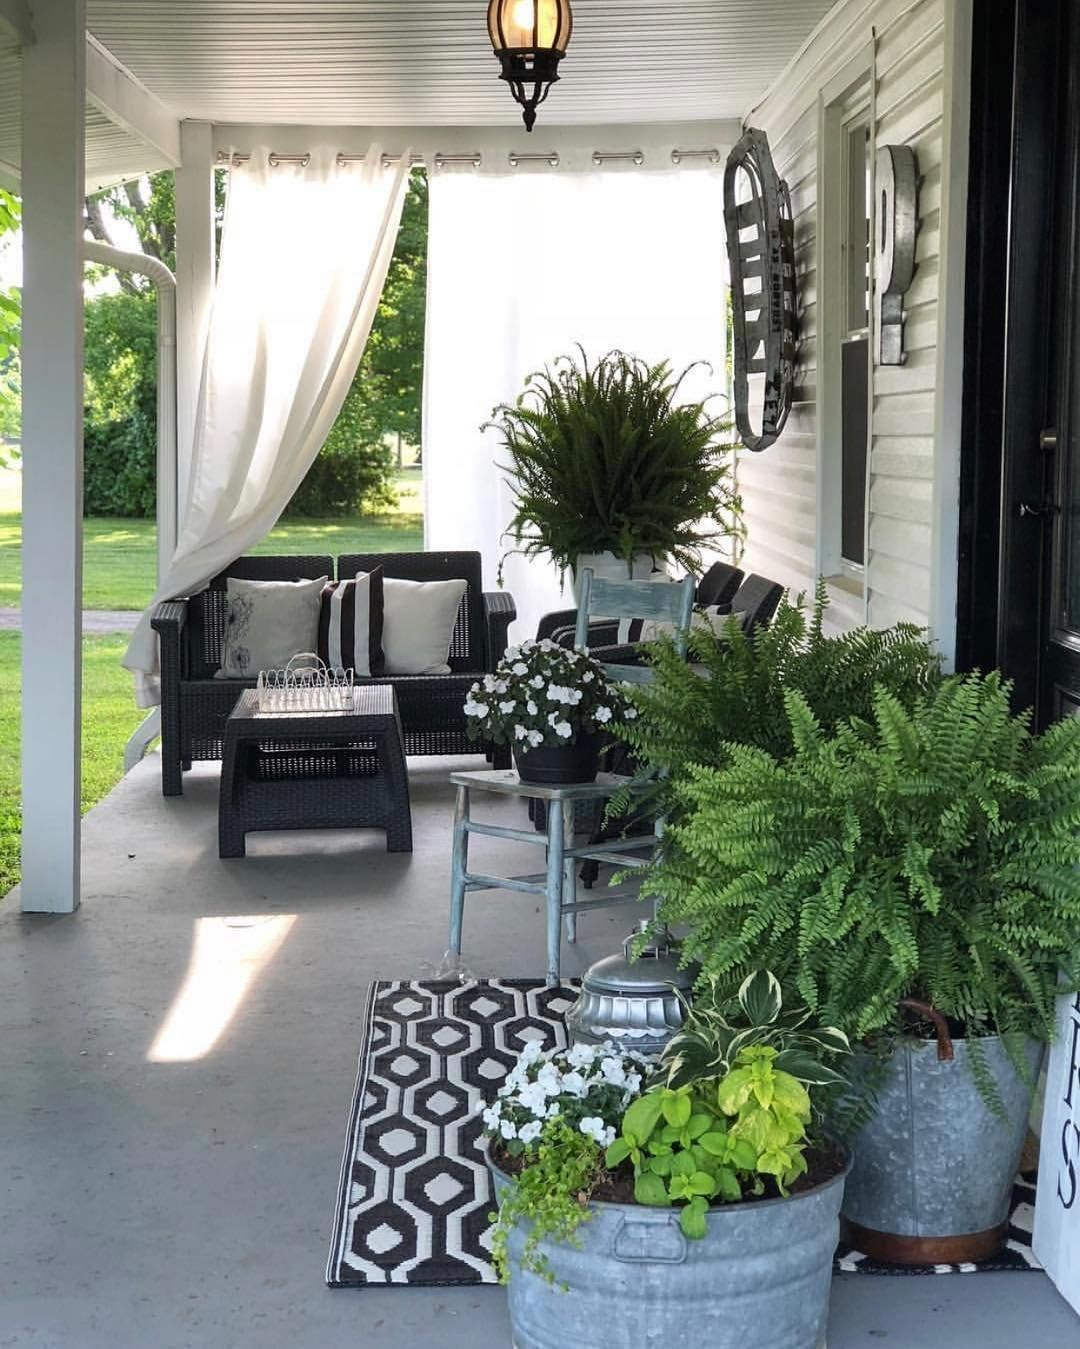 Modern Stunning Decor For Your Porch 2019 Trend Home Decor Awesome Ideas Of Porch Decor Porch De Courtyard Landscaping Front Porch Decorating Backyard Patio